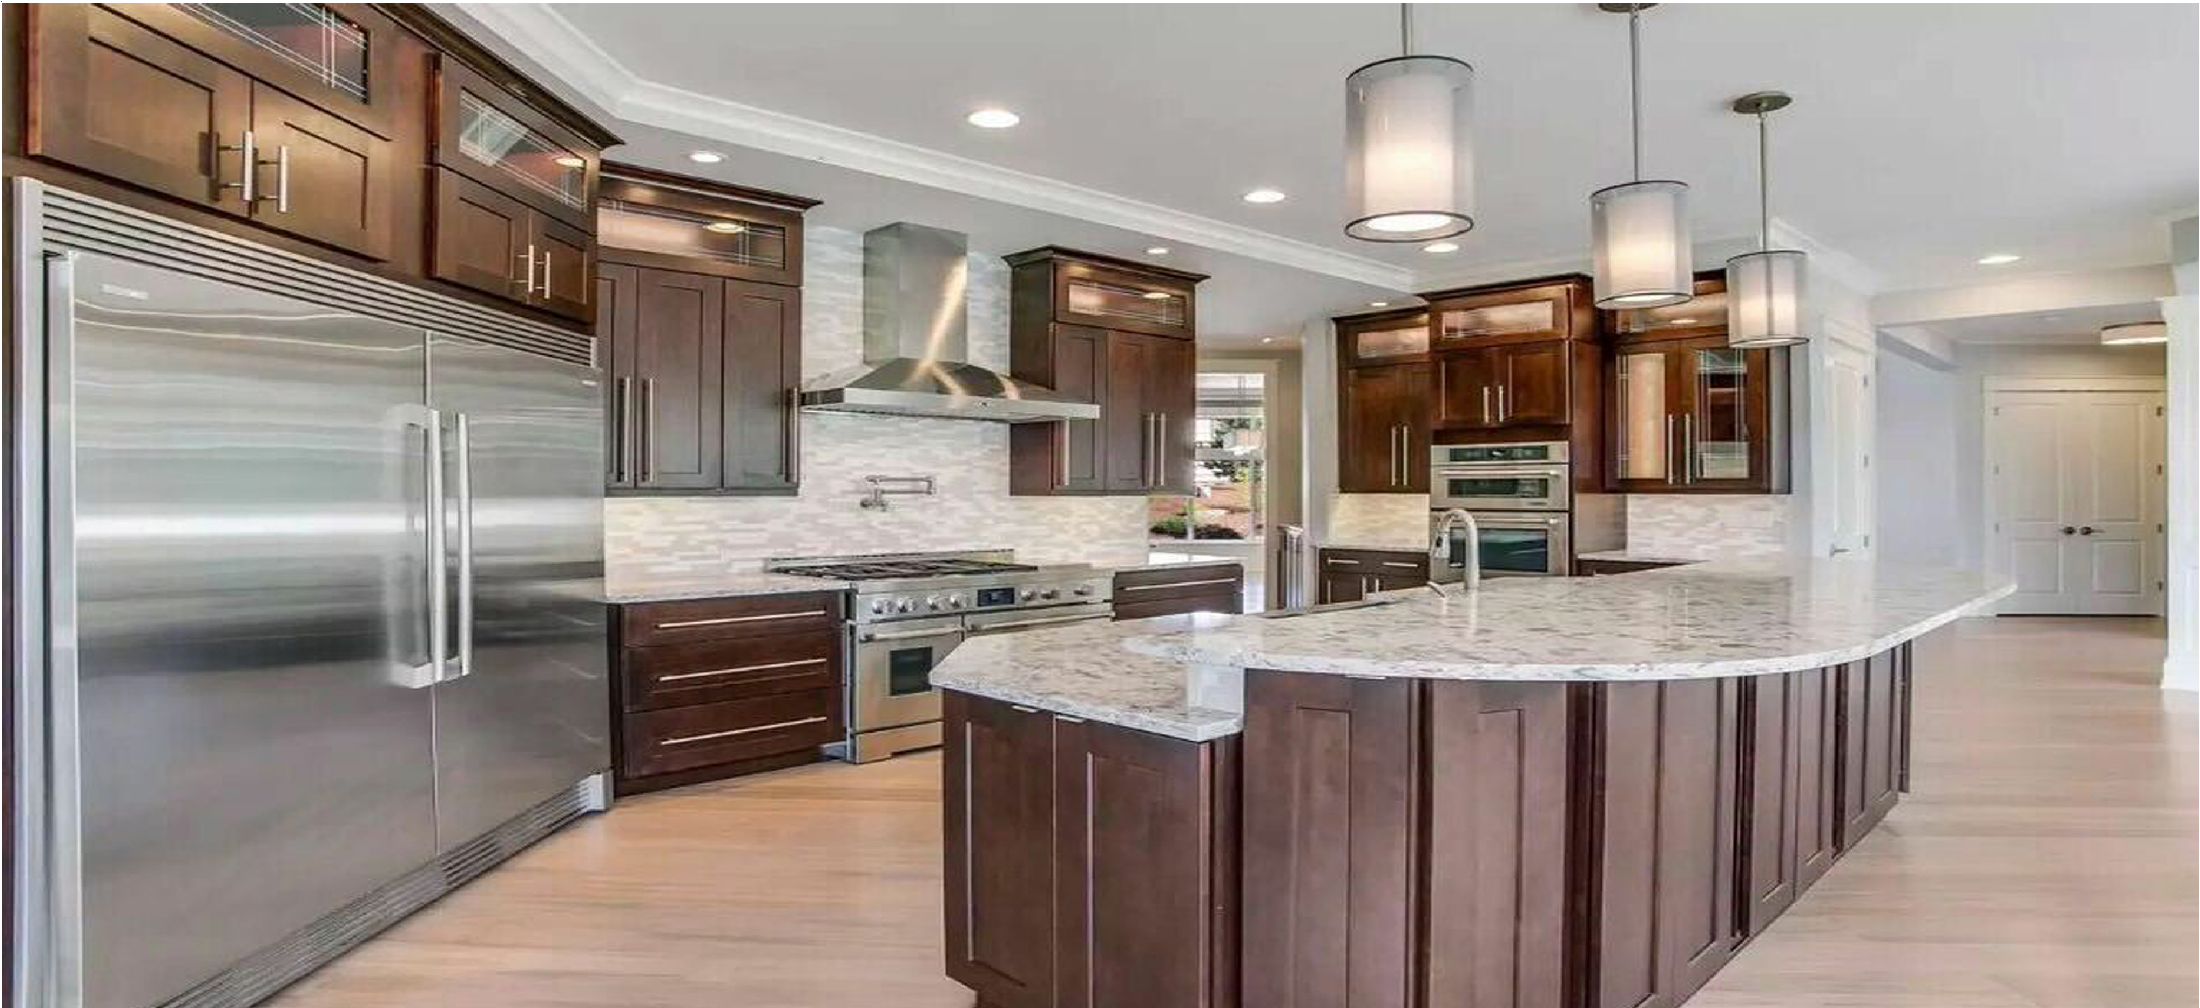 High Quality Cabinets & Granite Countertops | Lincoln, NE on What Color Granite Goes With Honey Maple Cabinets  id=15373